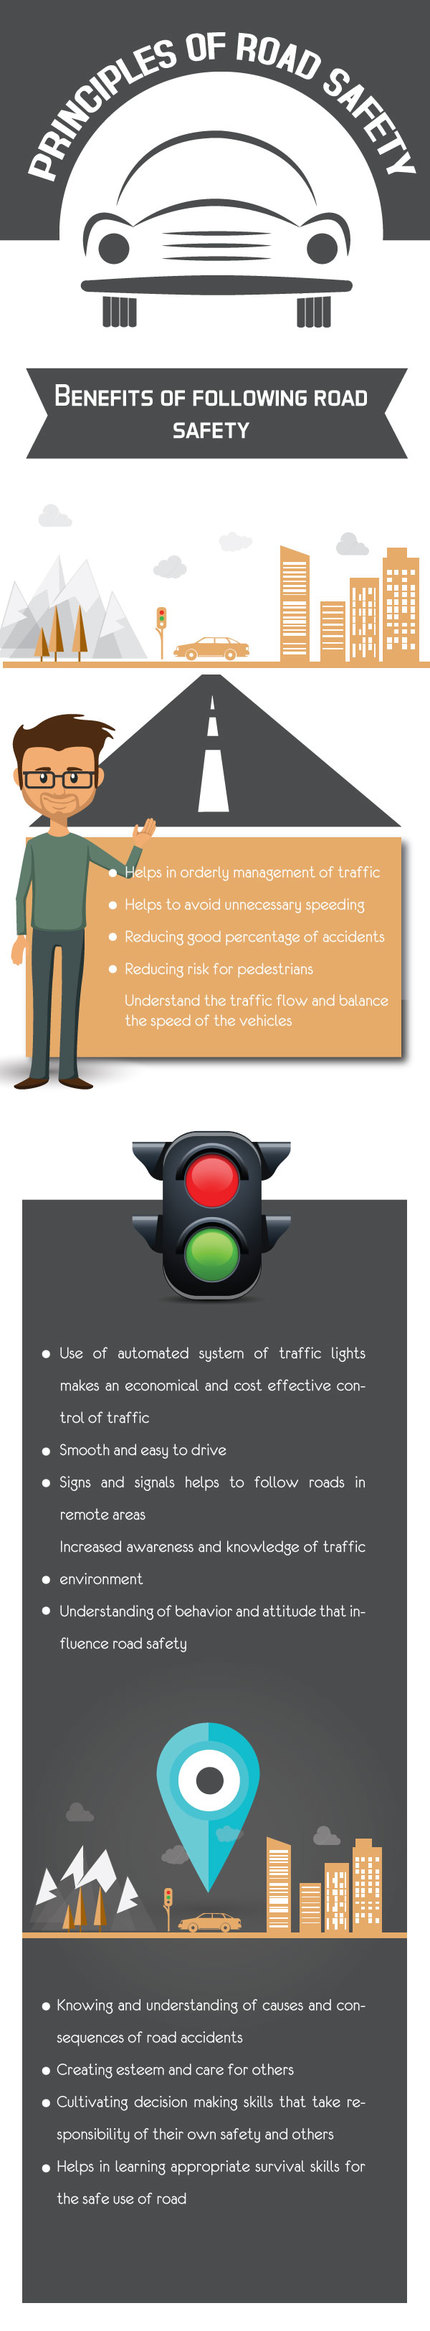 Principles of Road Safety - Trackschoolbus